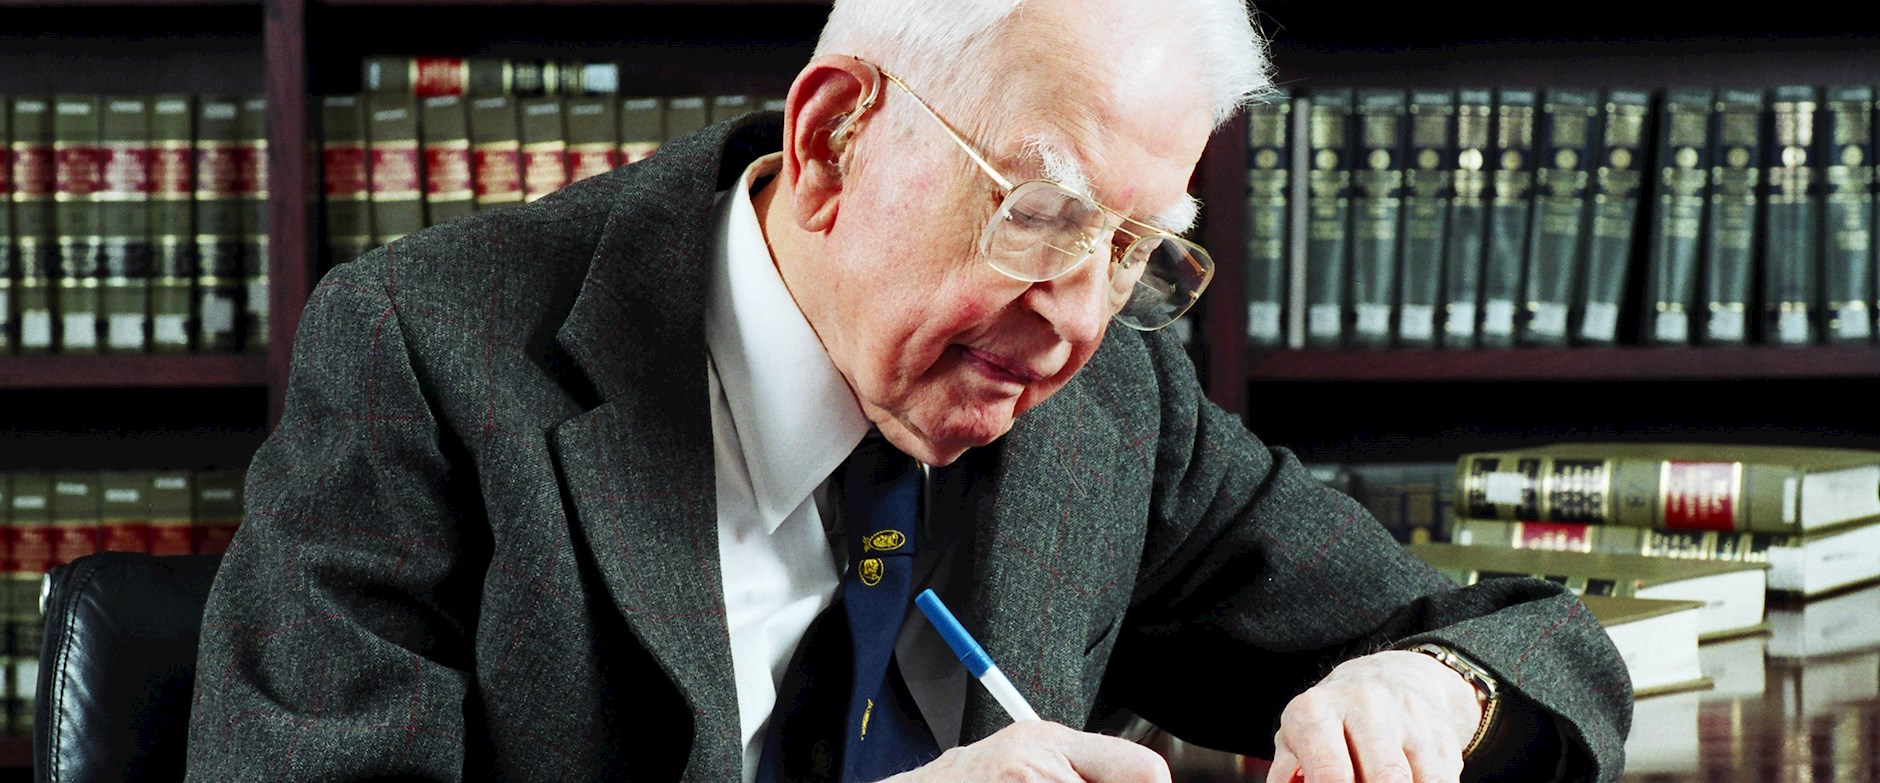 Ronald Coase writing in his office